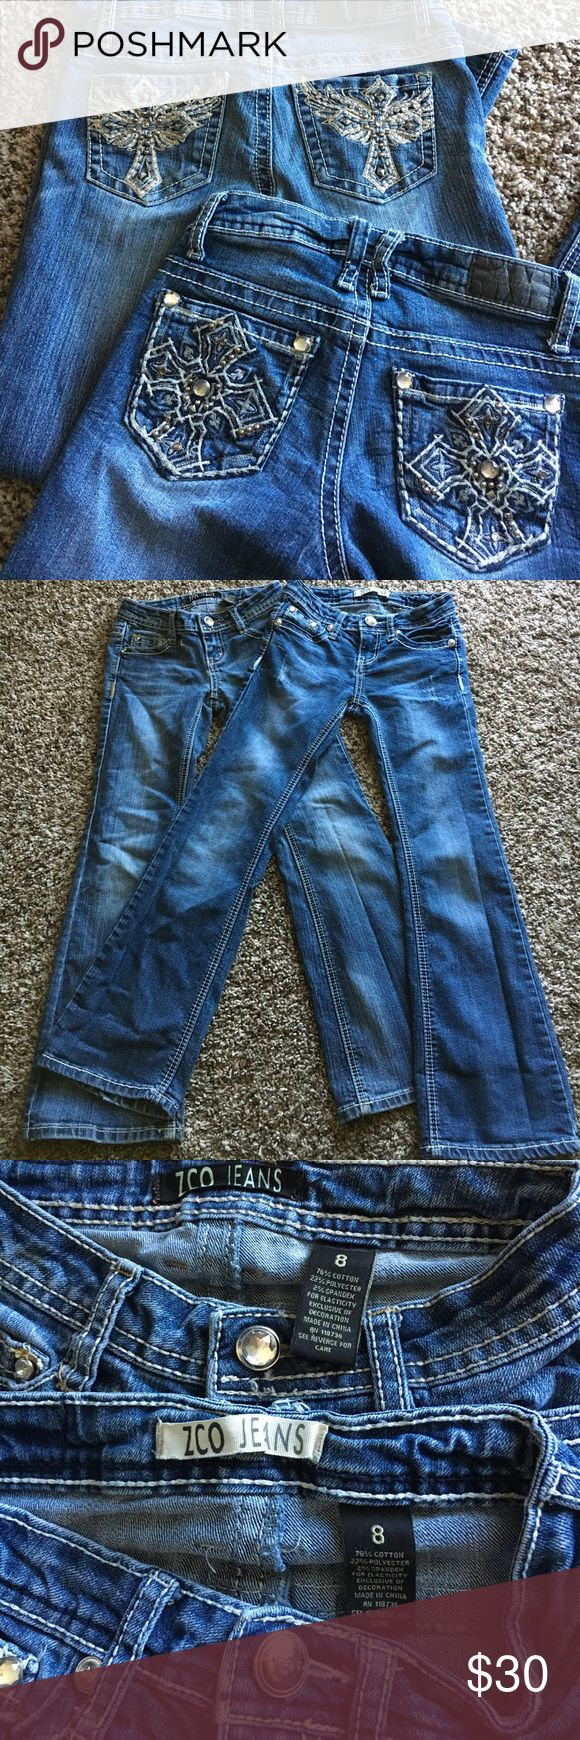 2 pairs girls ZCO jeans size 8 Gently worn, excellent condition, no flaws, smoke free. 🛍Open to reasonable offers ONLY please! I will not consider unreasonable offers that are half the asking price. No trades. No Modeling. And please keep in mind Poshmark sets the $6.49 flat rate shipping. Thank you!☺ ZCO Bottoms Jeans